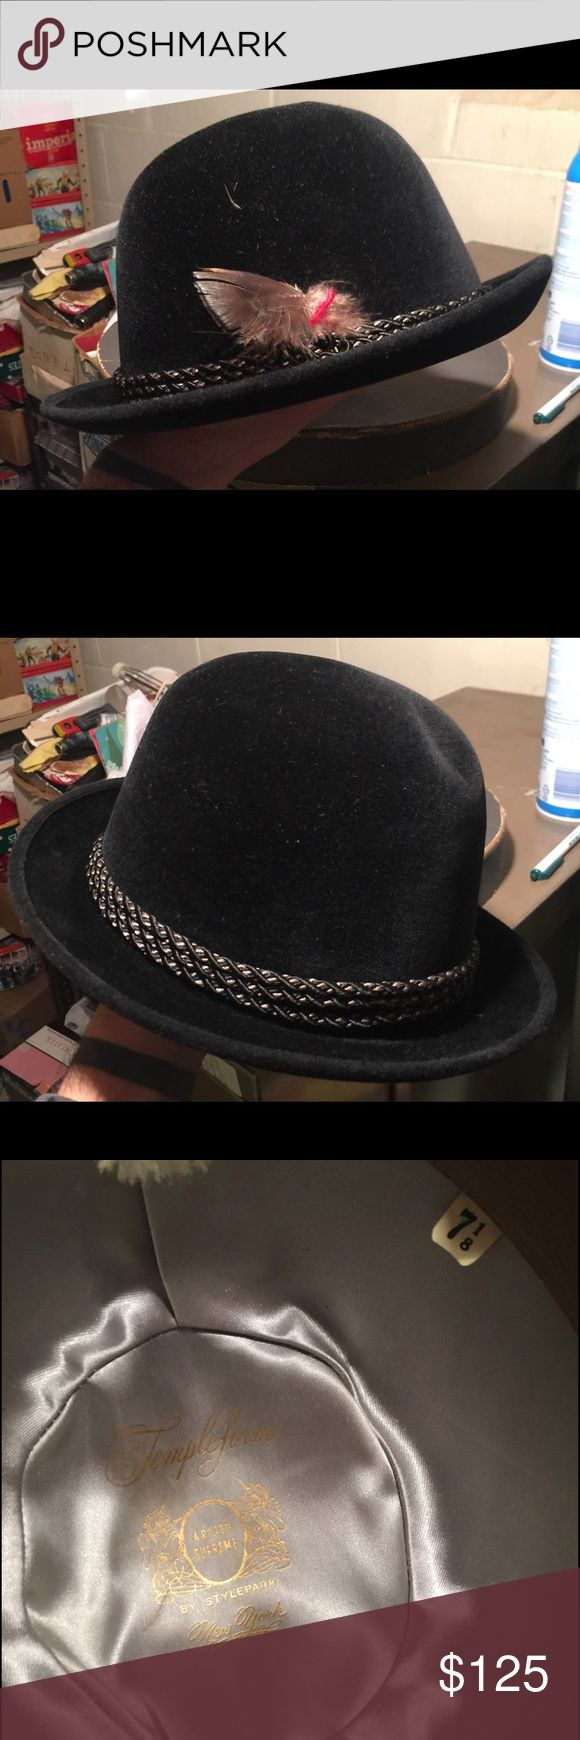 Vintage Black Fedora Bowler Velour Felt Hat 7 1/8 For sale is one used very gently worn Vintage Templeform Aristo Supreme by StylePark Black Fedora Bowler Velour Felt Hat. Size 7 1/8. No stains, rips, or tears. Comes from a clean smoke free home. Use to belong to my grandfather. Only selling because it doesn't fit my head. Original box is included with the hat. Templeform Accessories Hats